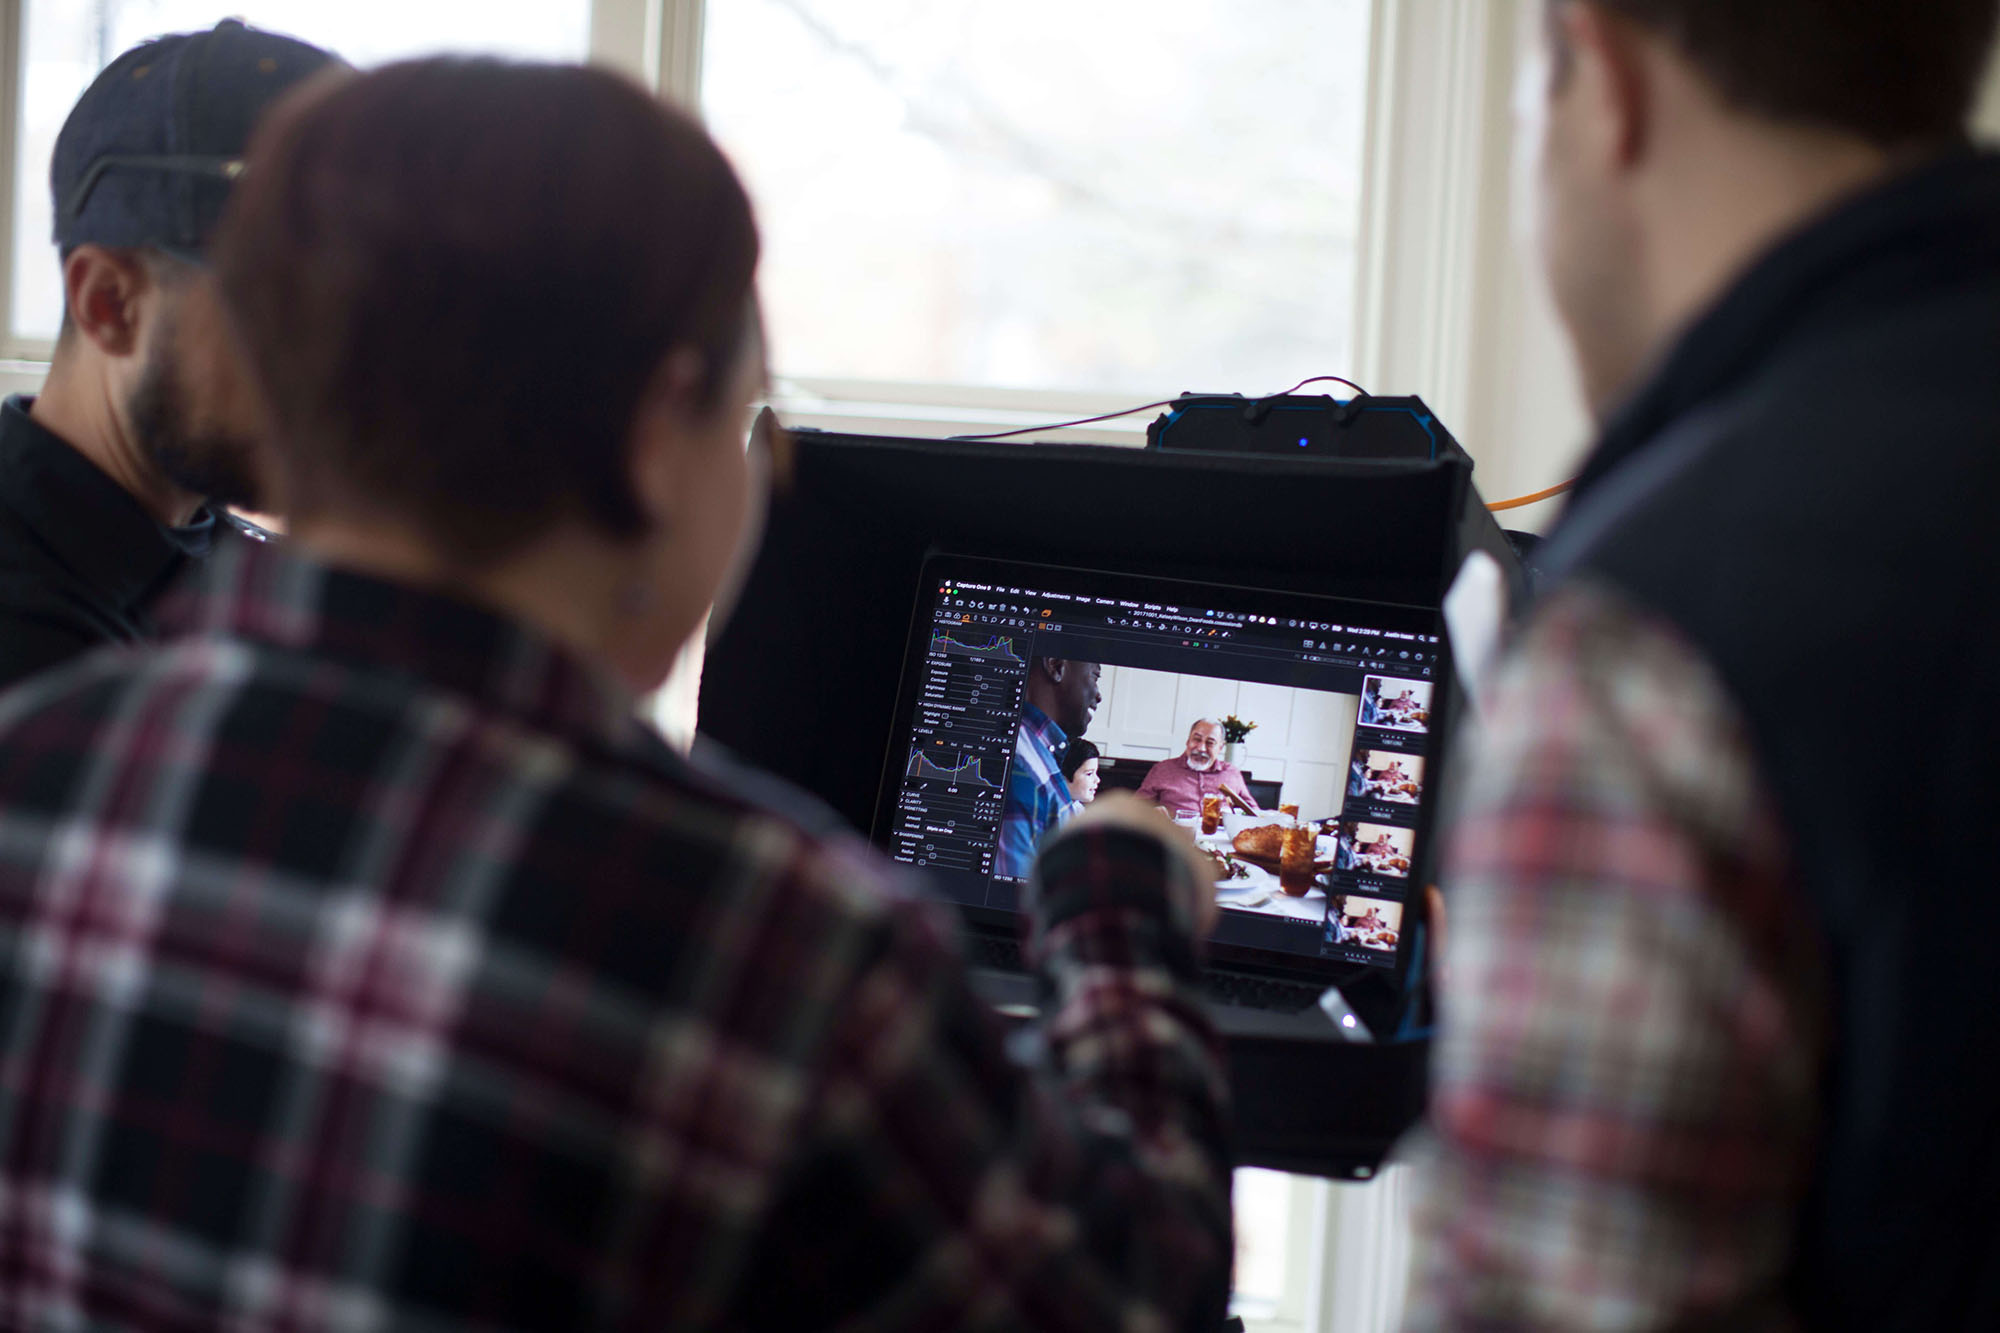 HOW TO BOOST YOUR VIDEO'S VIEWERSHIP